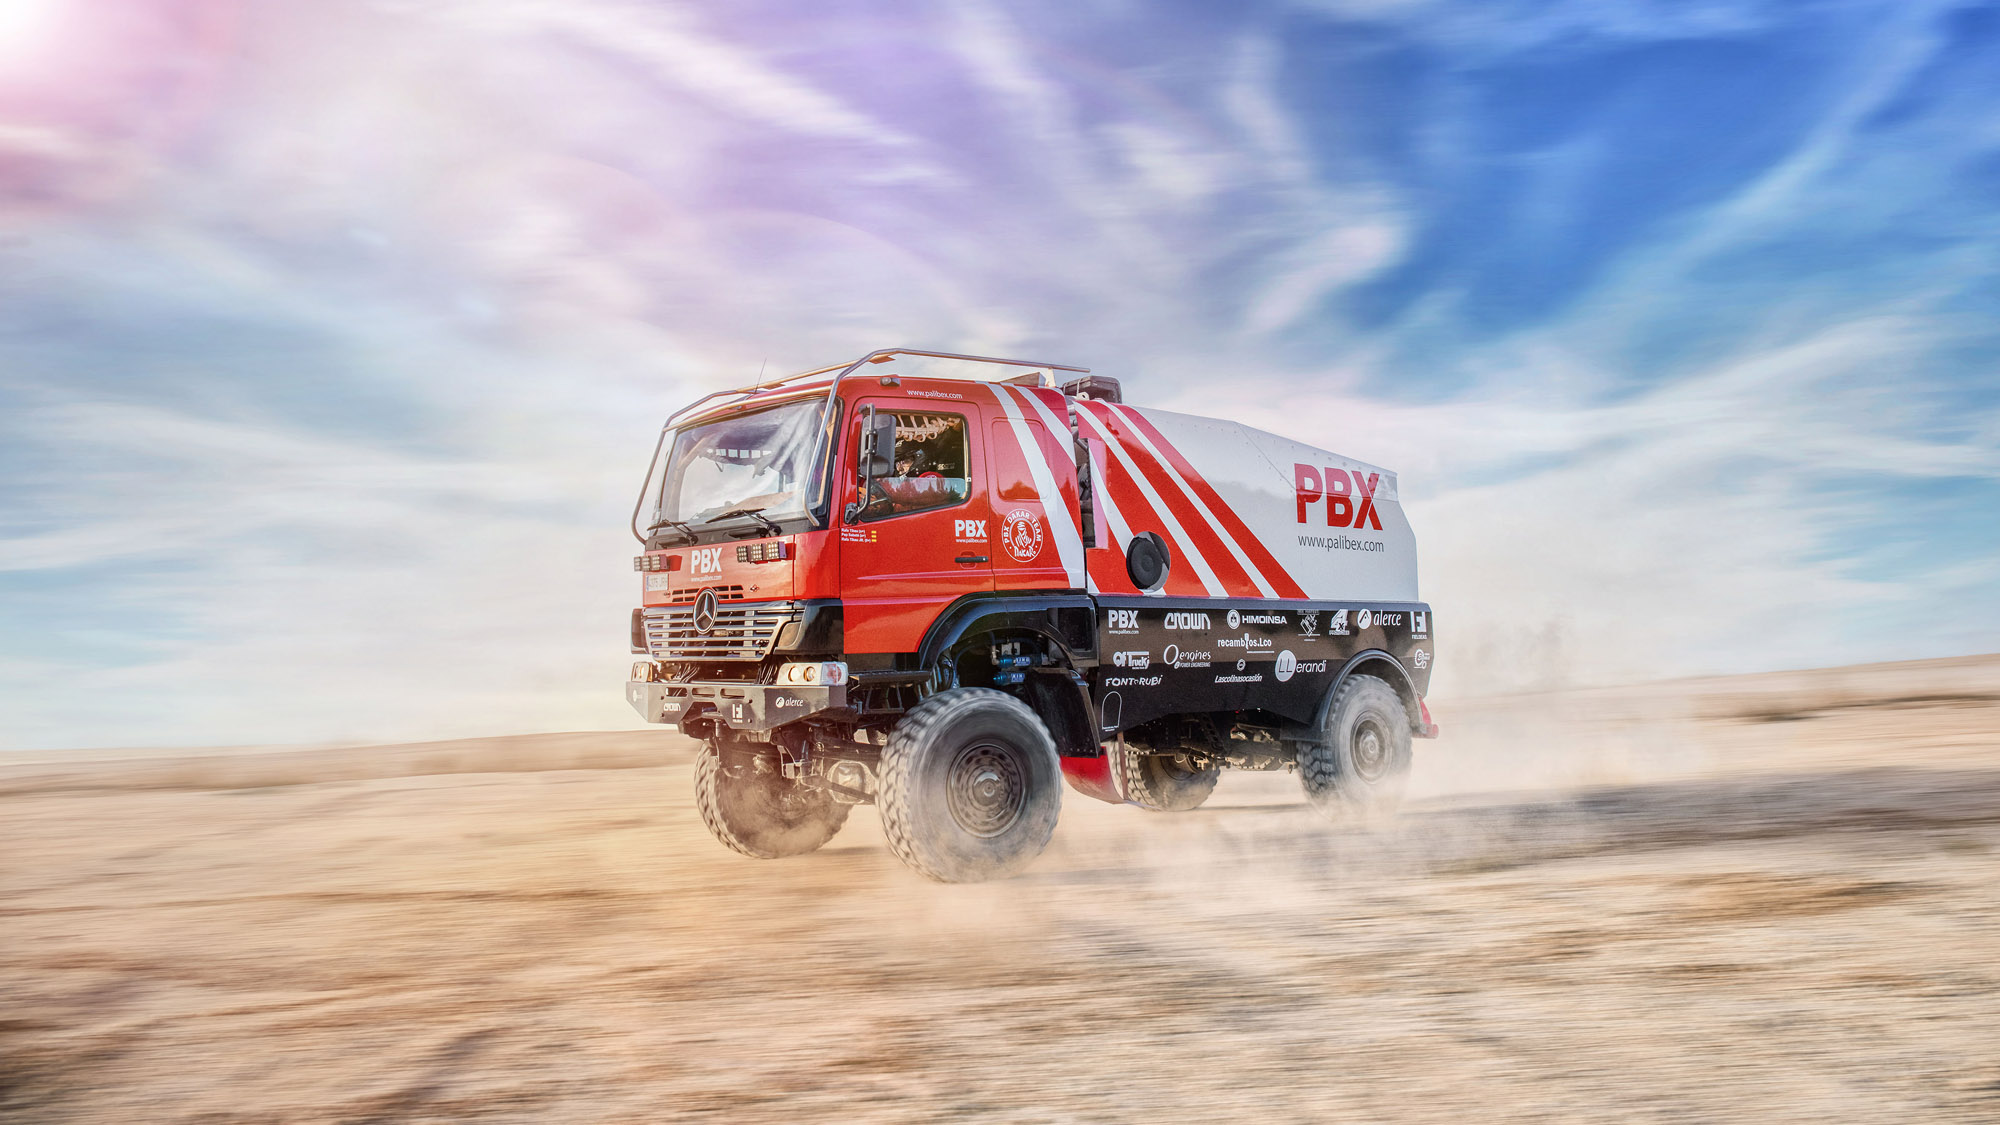 PALIBEX-ROTULACION-VEHICULOS-BEUSUAL - PBX DAKAR TEAM - TRUCKS DAKAR